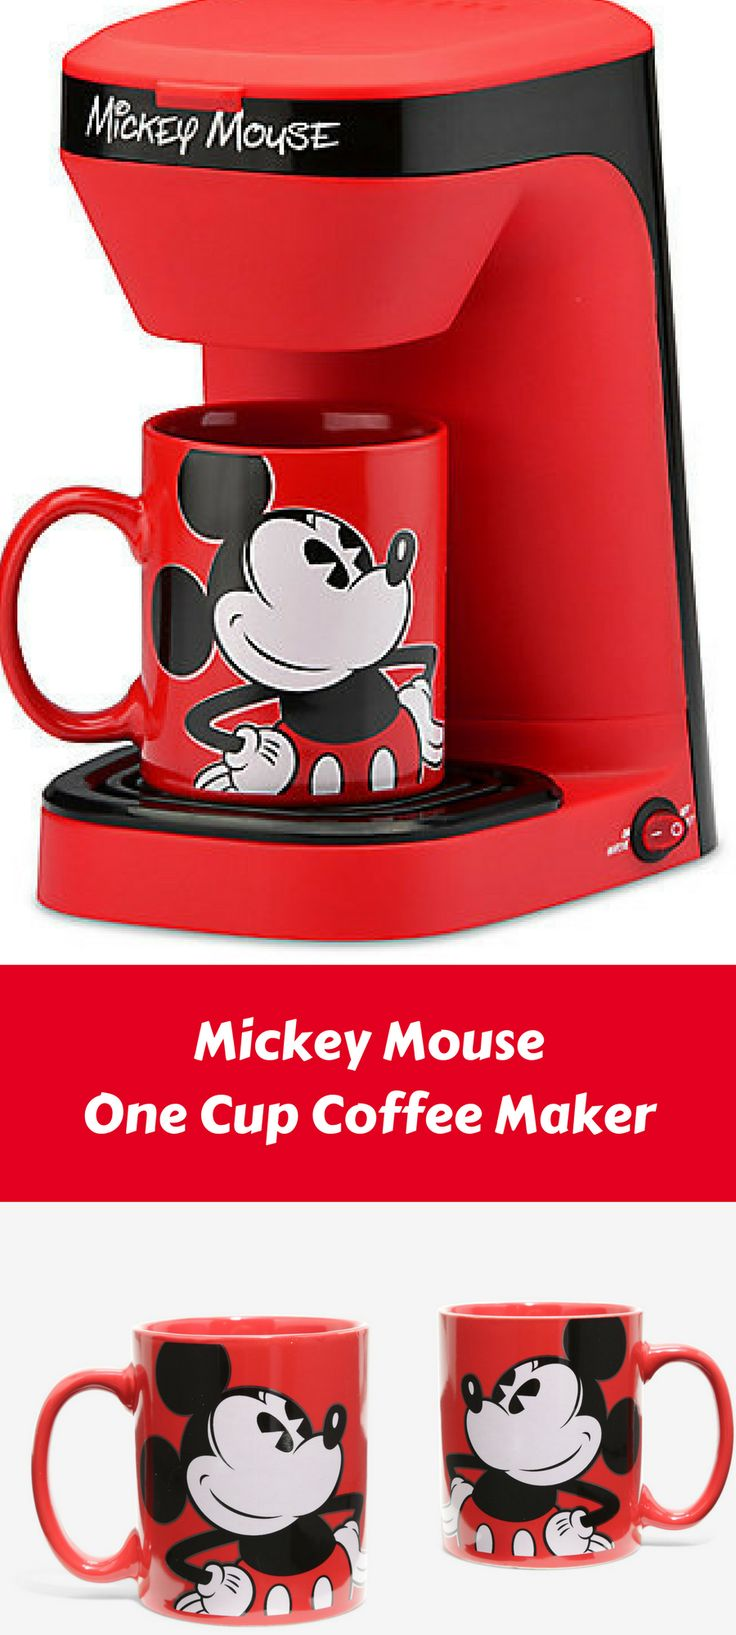 Mickey Mouse One Cup Coffee Maker - perfect for the Disney and coffee lover! #affiliate